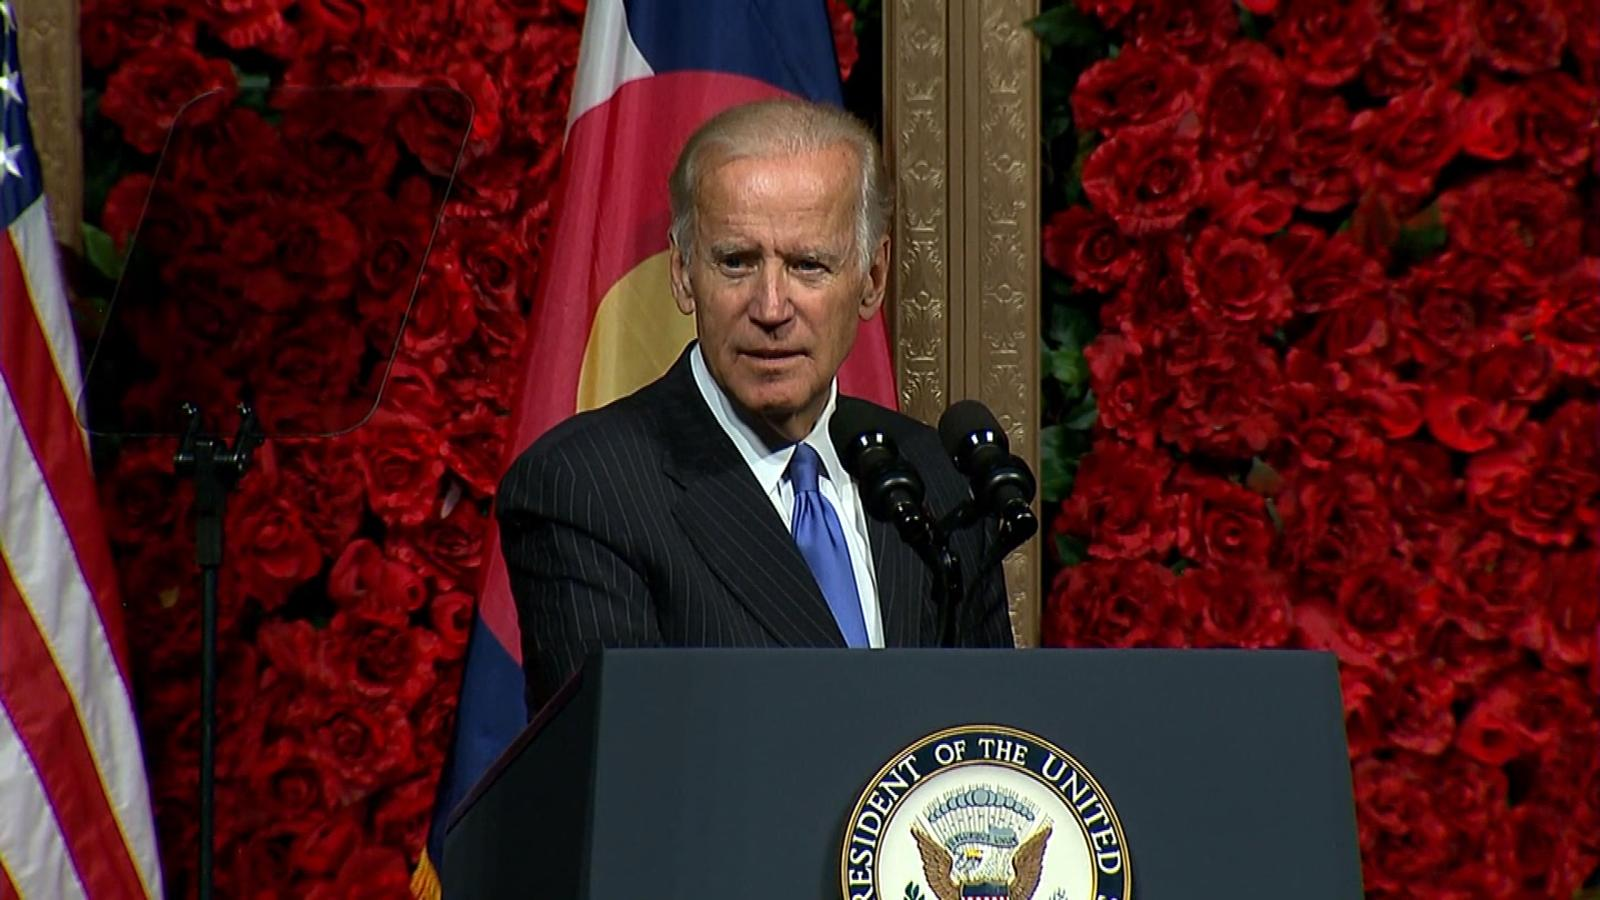 Joe Biden (credit: CBS)